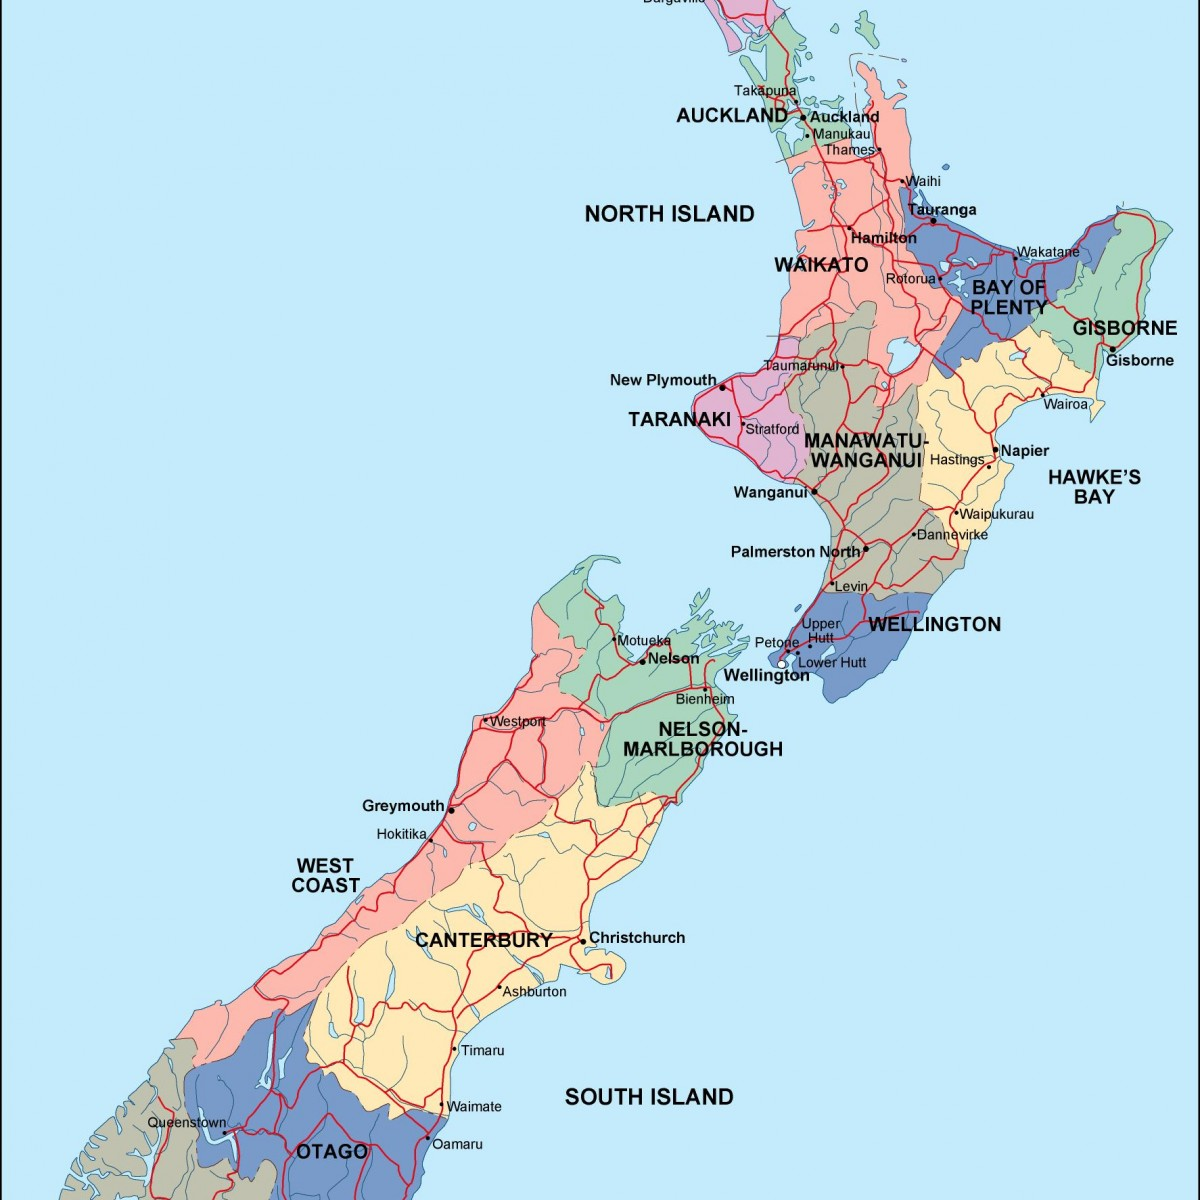 Show Map Of New Zealand.New Zealand Political Map